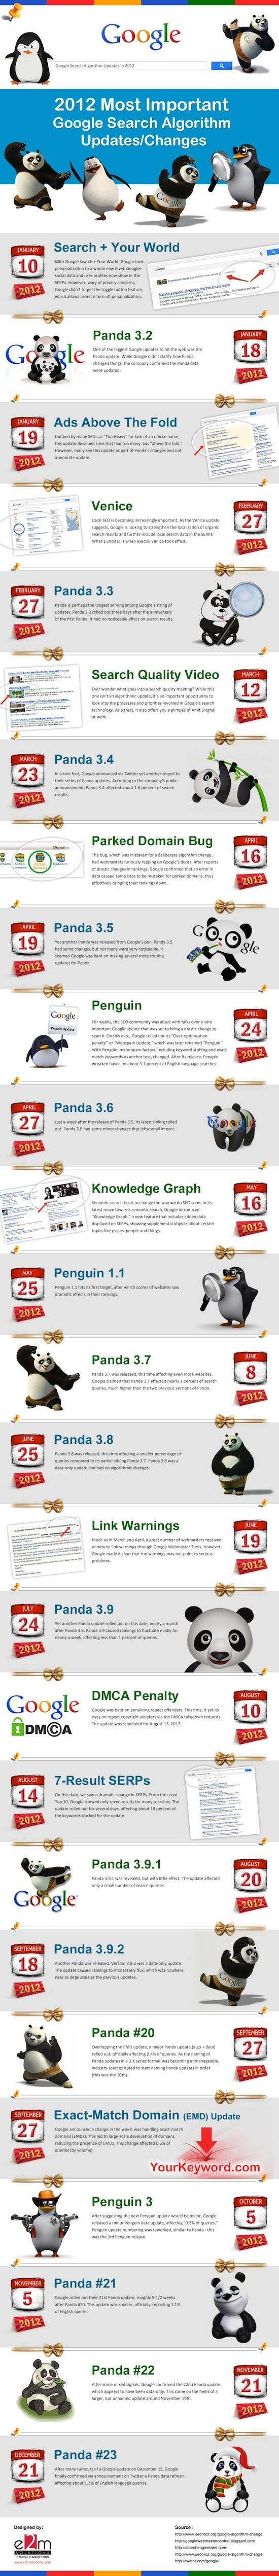 2012 Most Important Google Search Algorithm Updates  http://colibritool.com/blog/infographic-2012-most-important-google-search-algorithm-updates